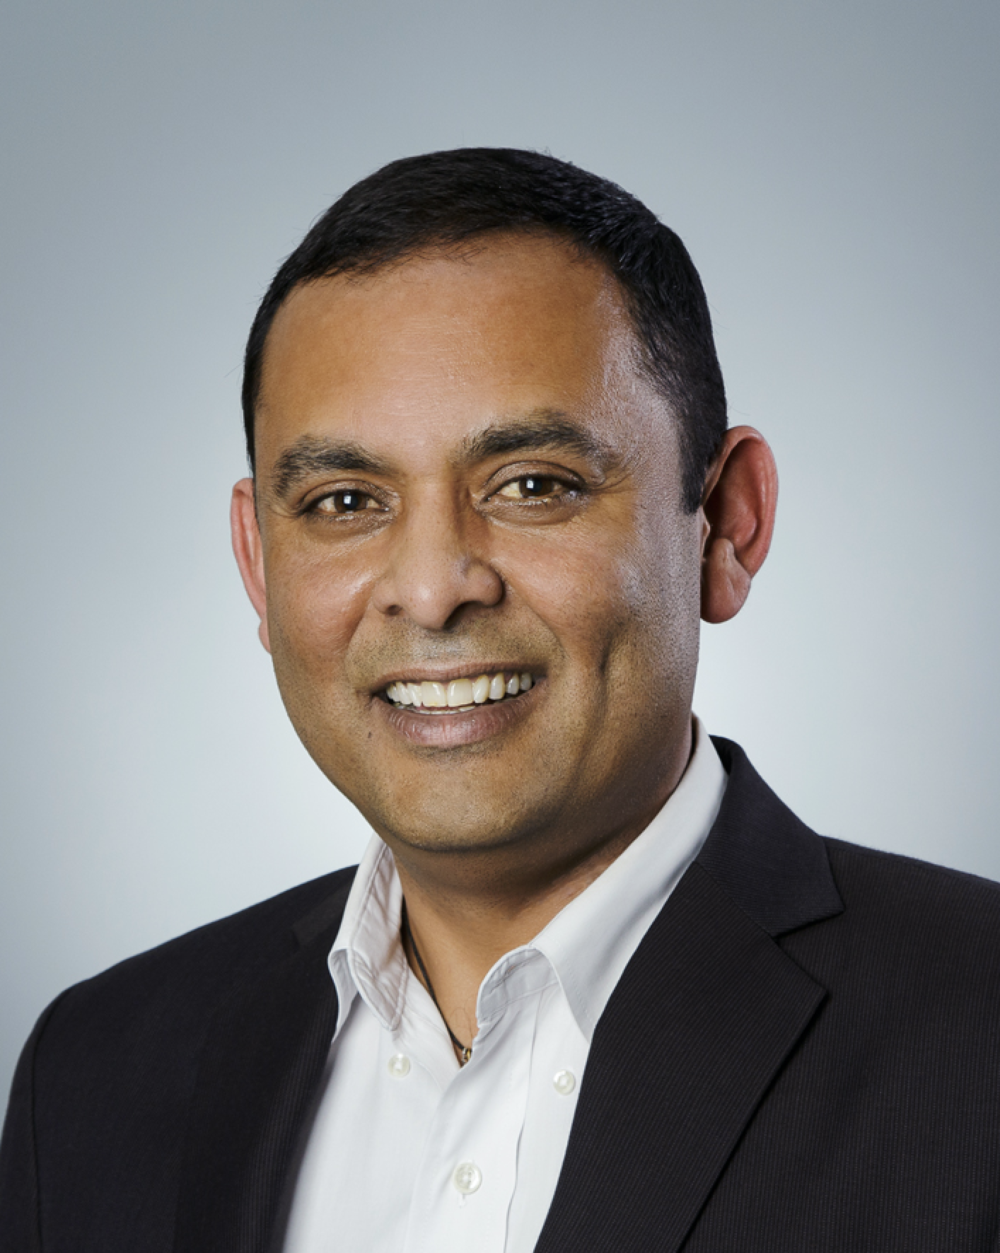 Adi Mohanty, Co-CEO